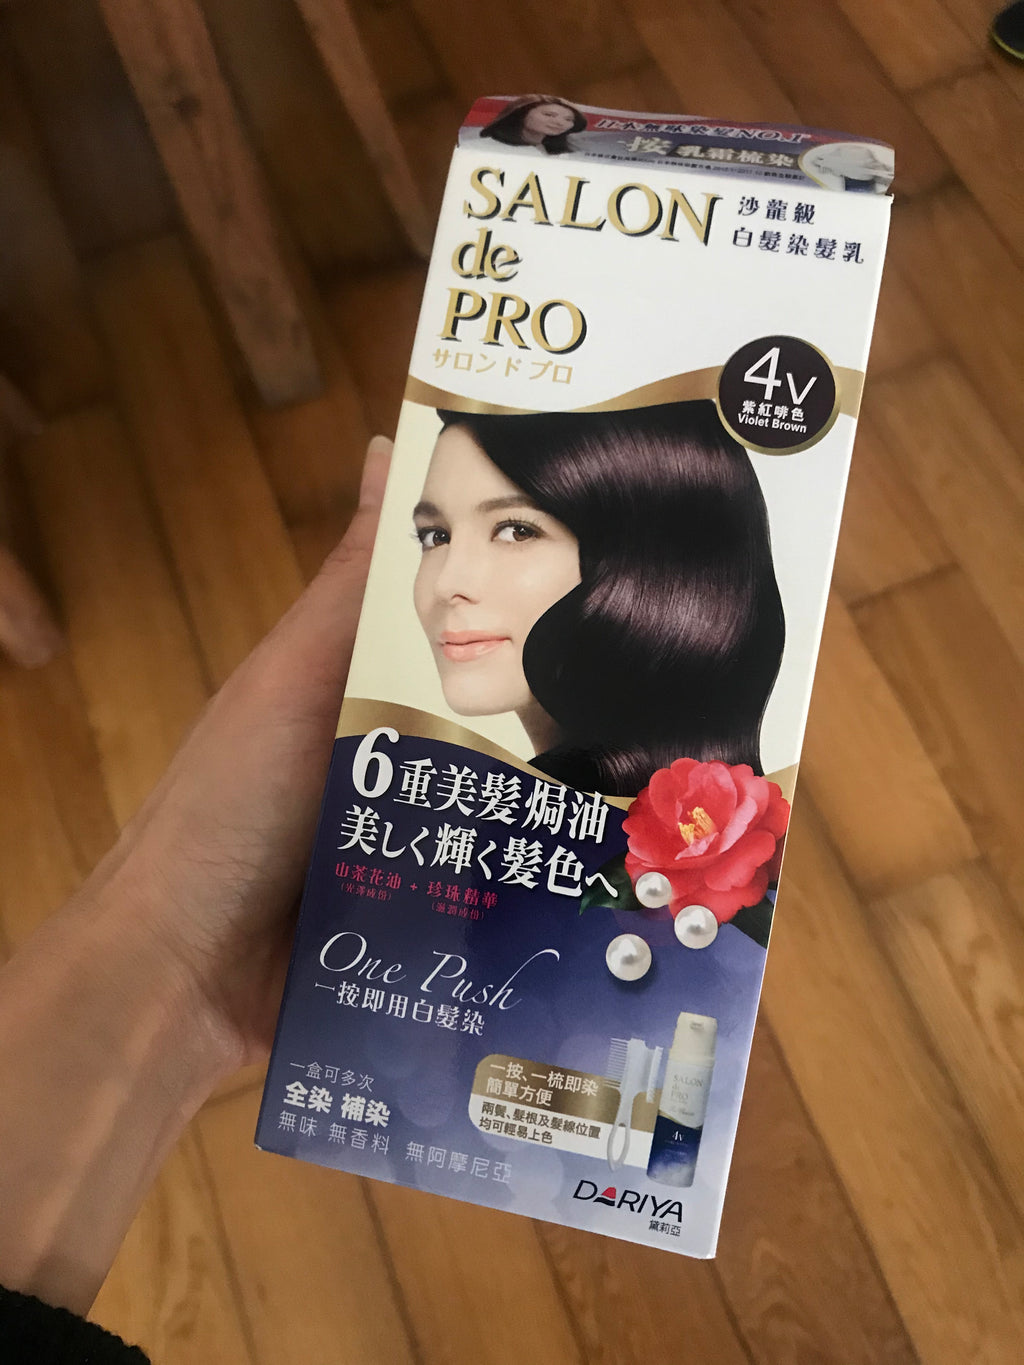 Dariya Salon De Pro Review